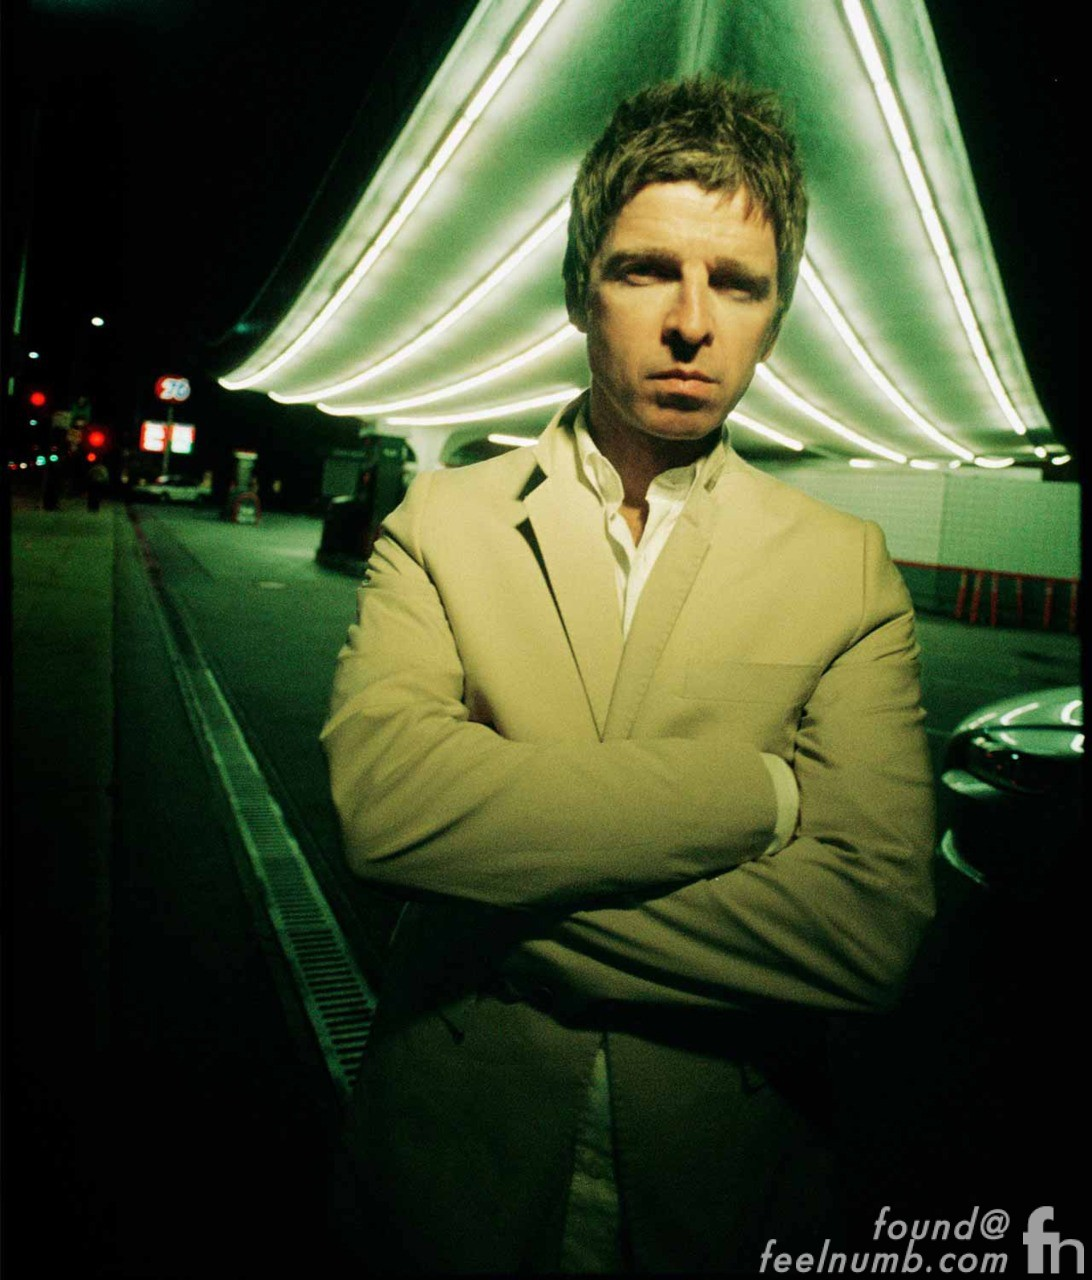 Noel Gallagher Album Cover Photo Location Jack Colker Union 76 Gas Petrol Station feelnumb.com